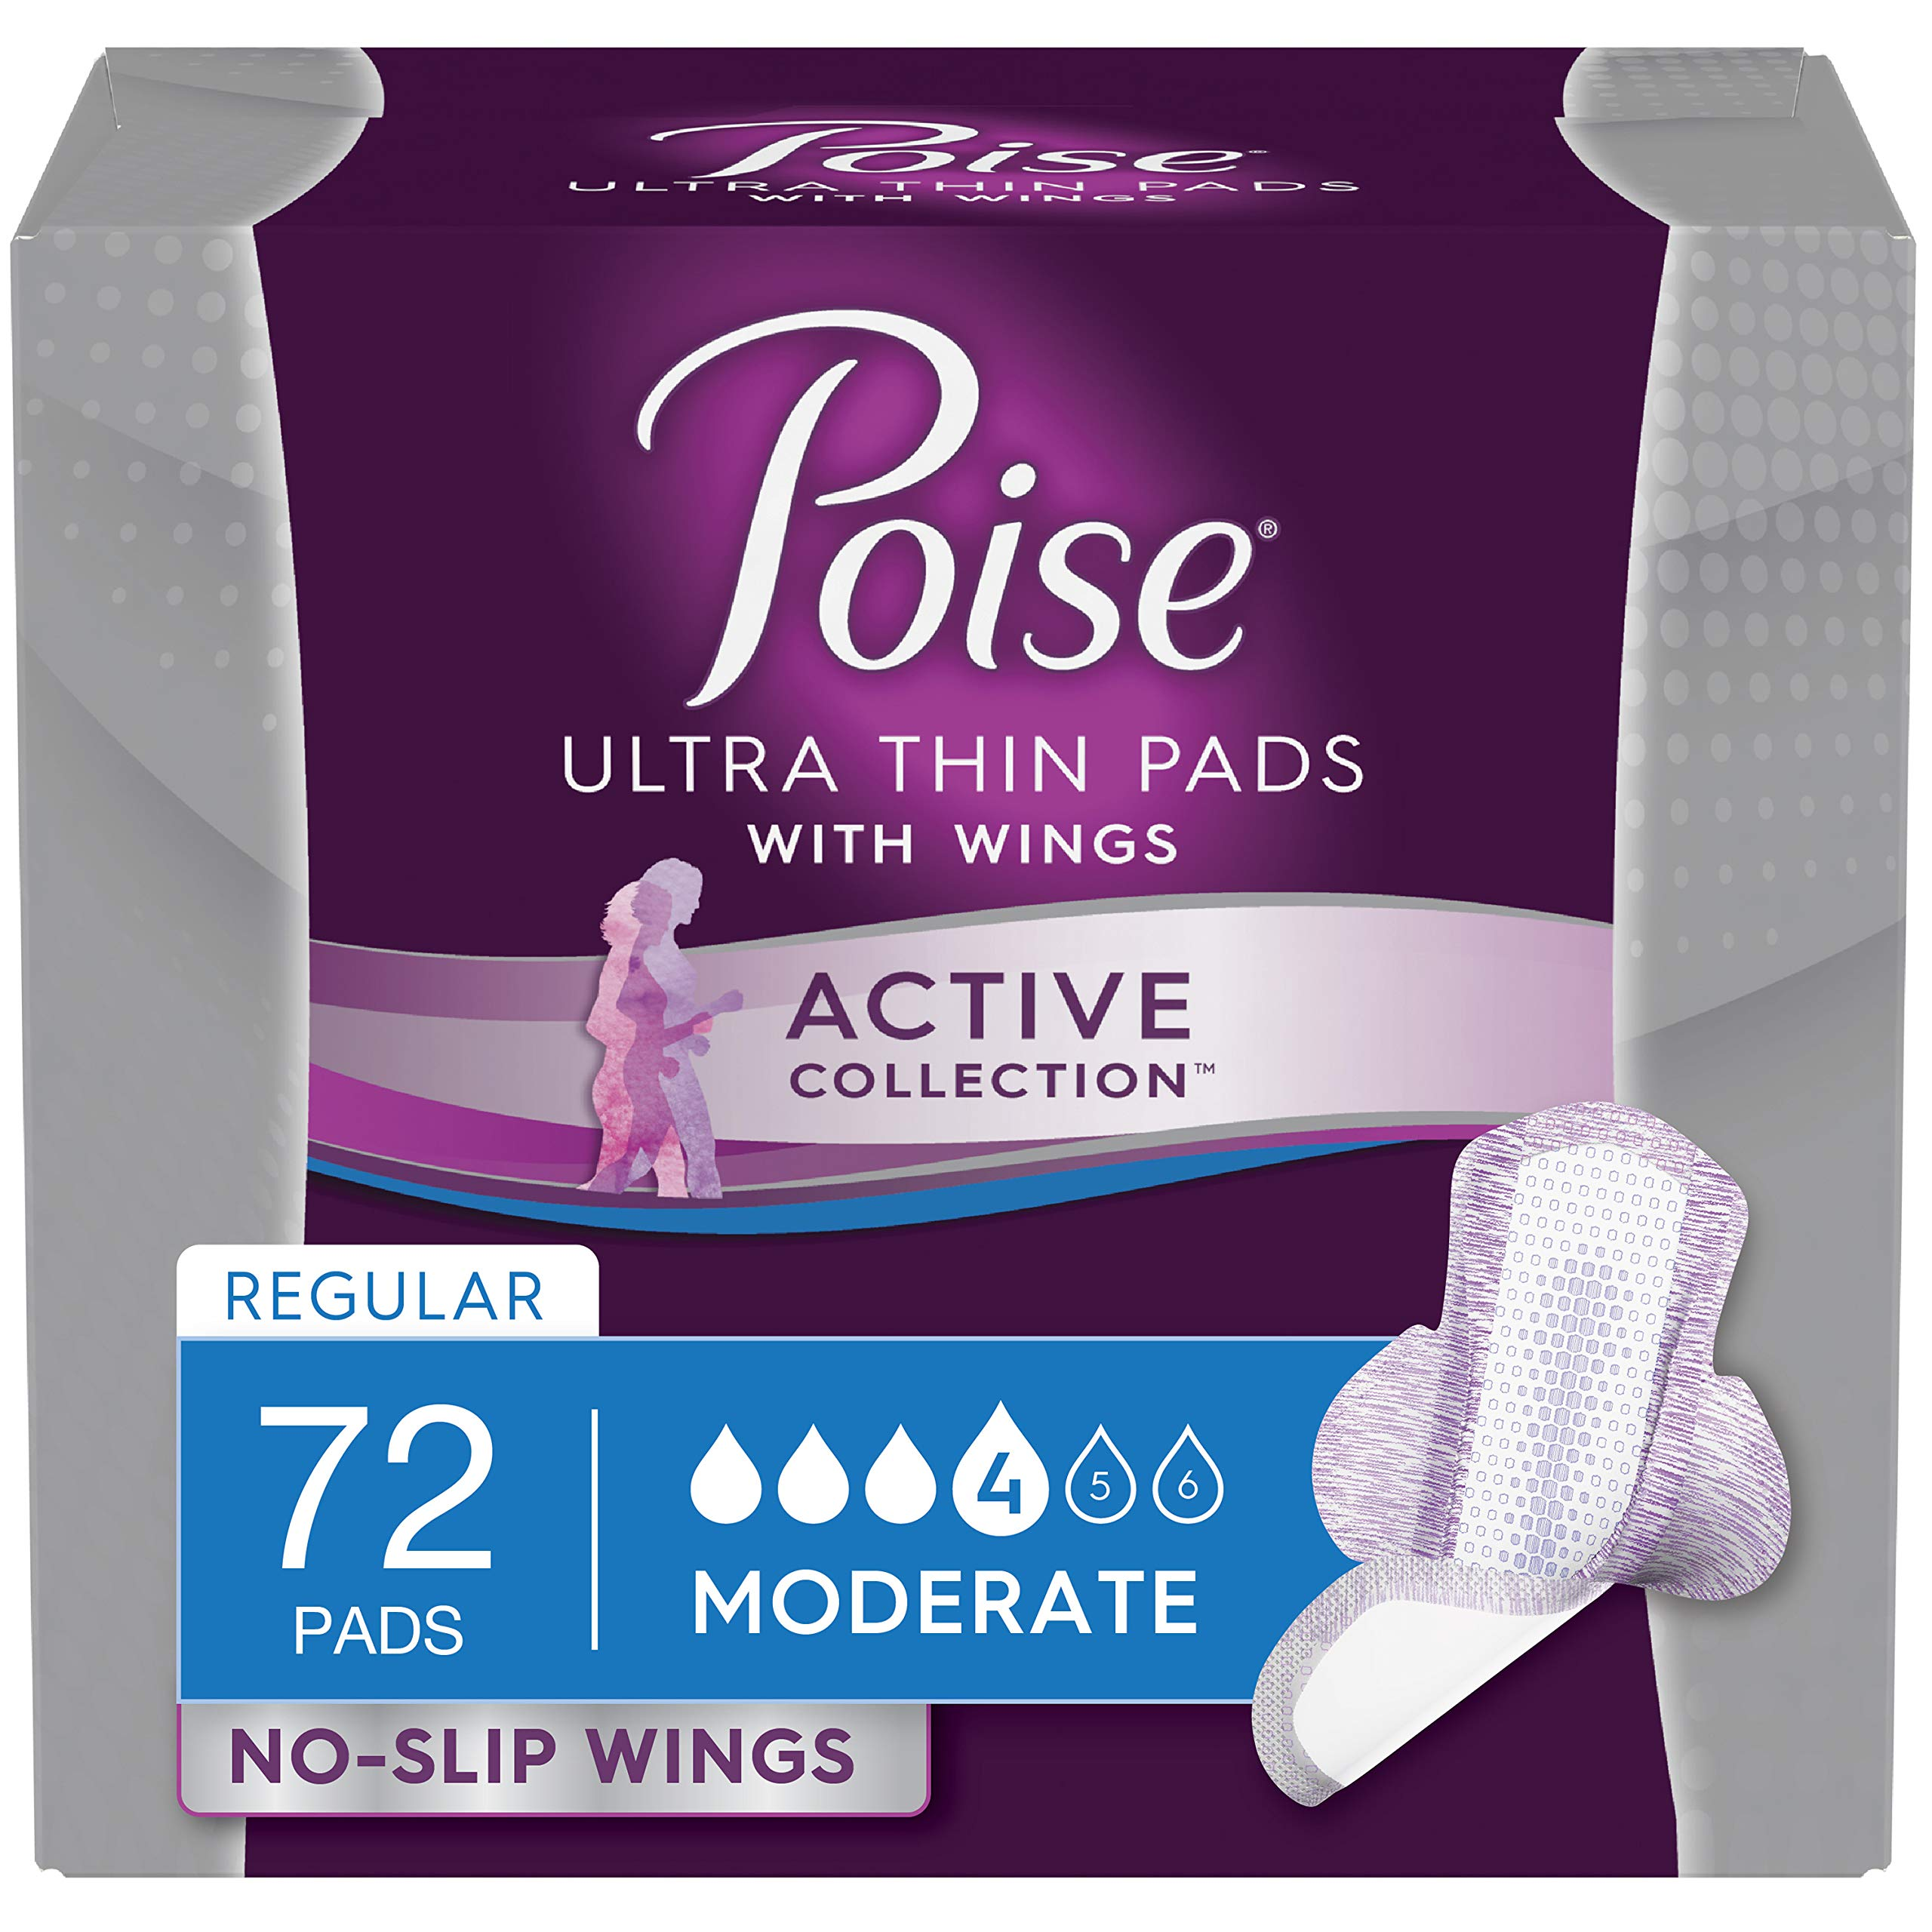 Poise Active Collection Incontinence Pads with Wings, Moderate Absorbency, 72 Count product image